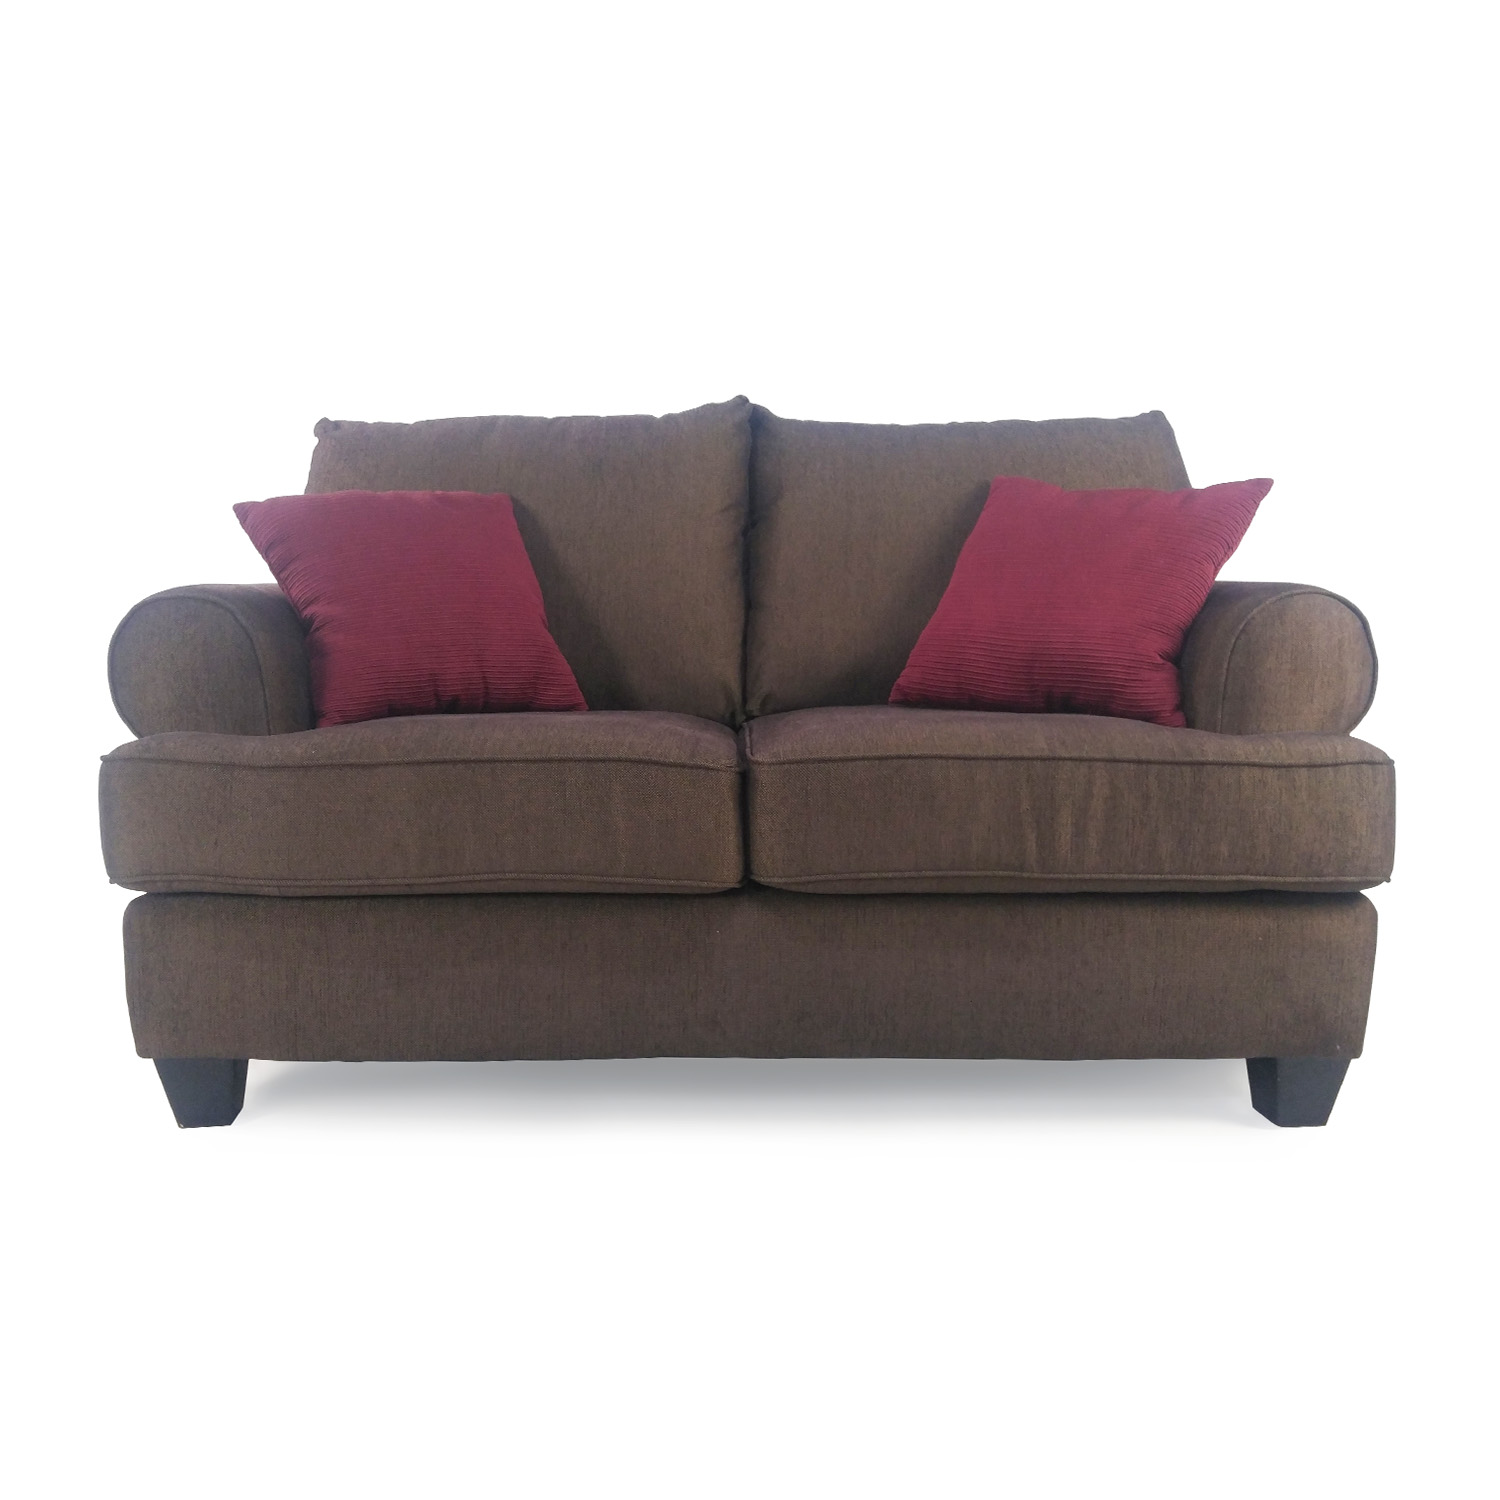 62 Off Modern Leather 2 Seater Couch Sofas